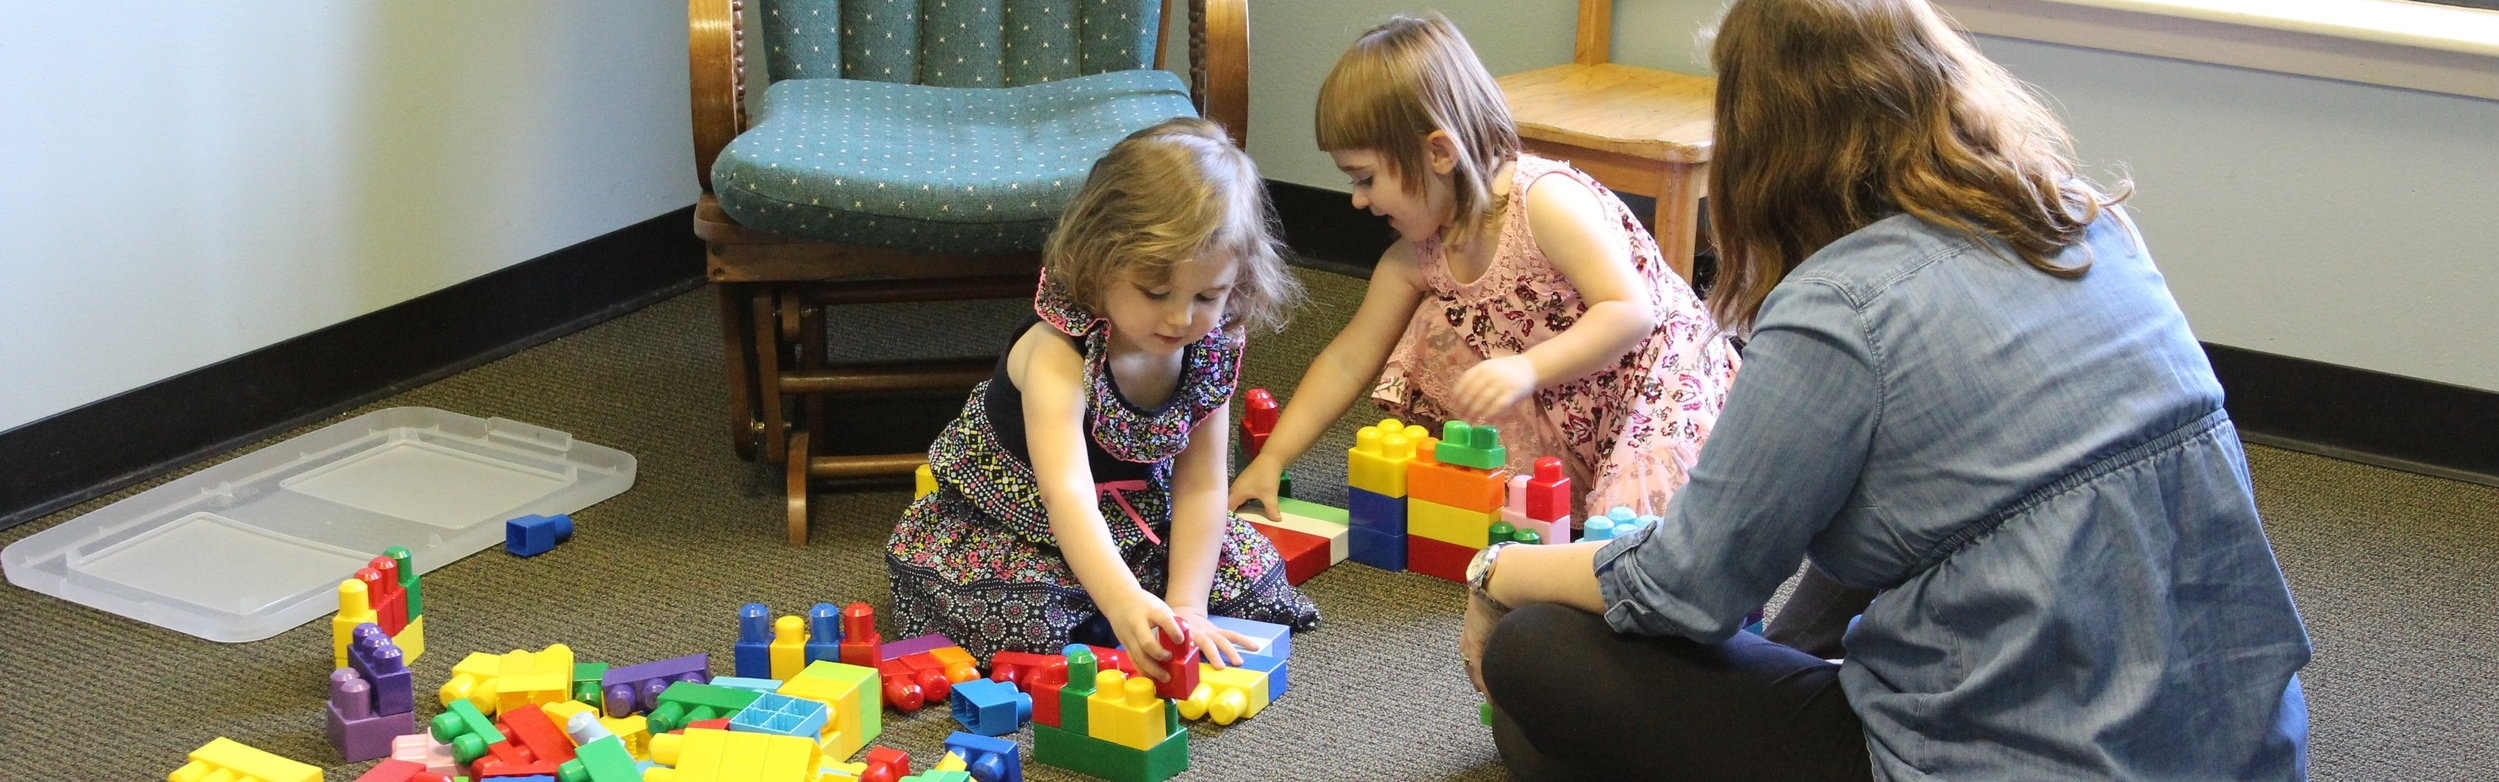 What About Child Care? -